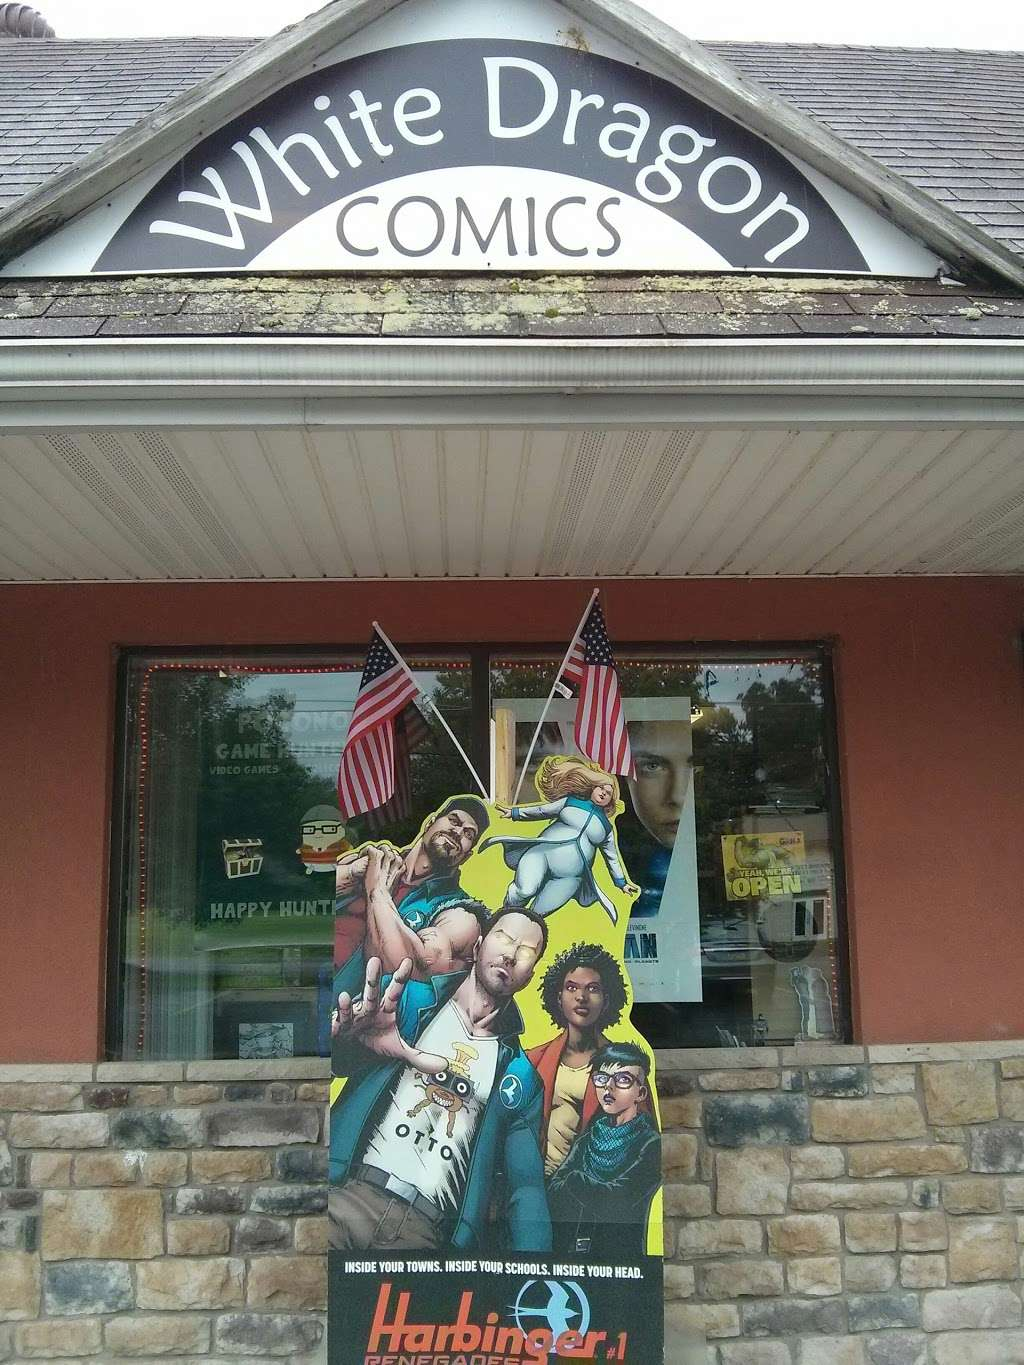 White Dragon Comics - book store  | Photo 2 of 6 | Address: 246 Stadden Road, Peddlers Village, Suite 202, Tannersville, PA 18372, USA | Phone: (570) 242-6255